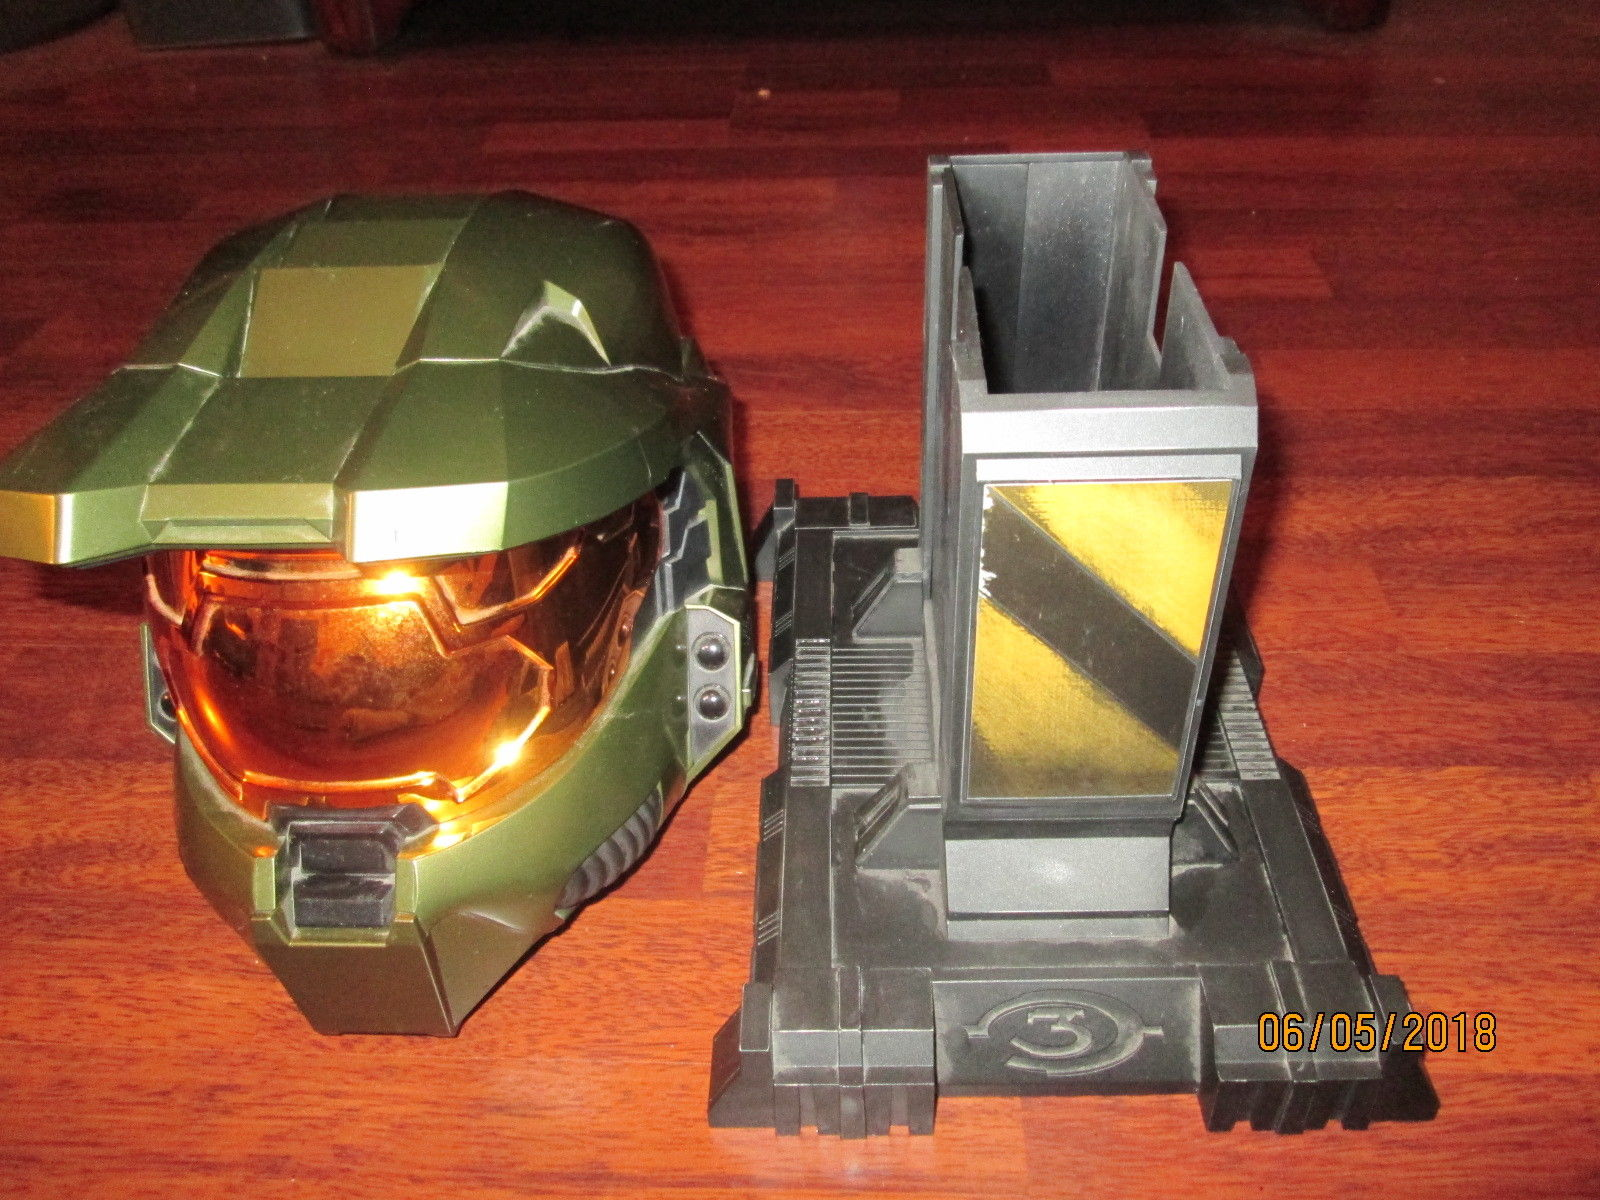 Halo 3 Master Chief Display Spartan Helmet Legendary Edition - No Box, No Game